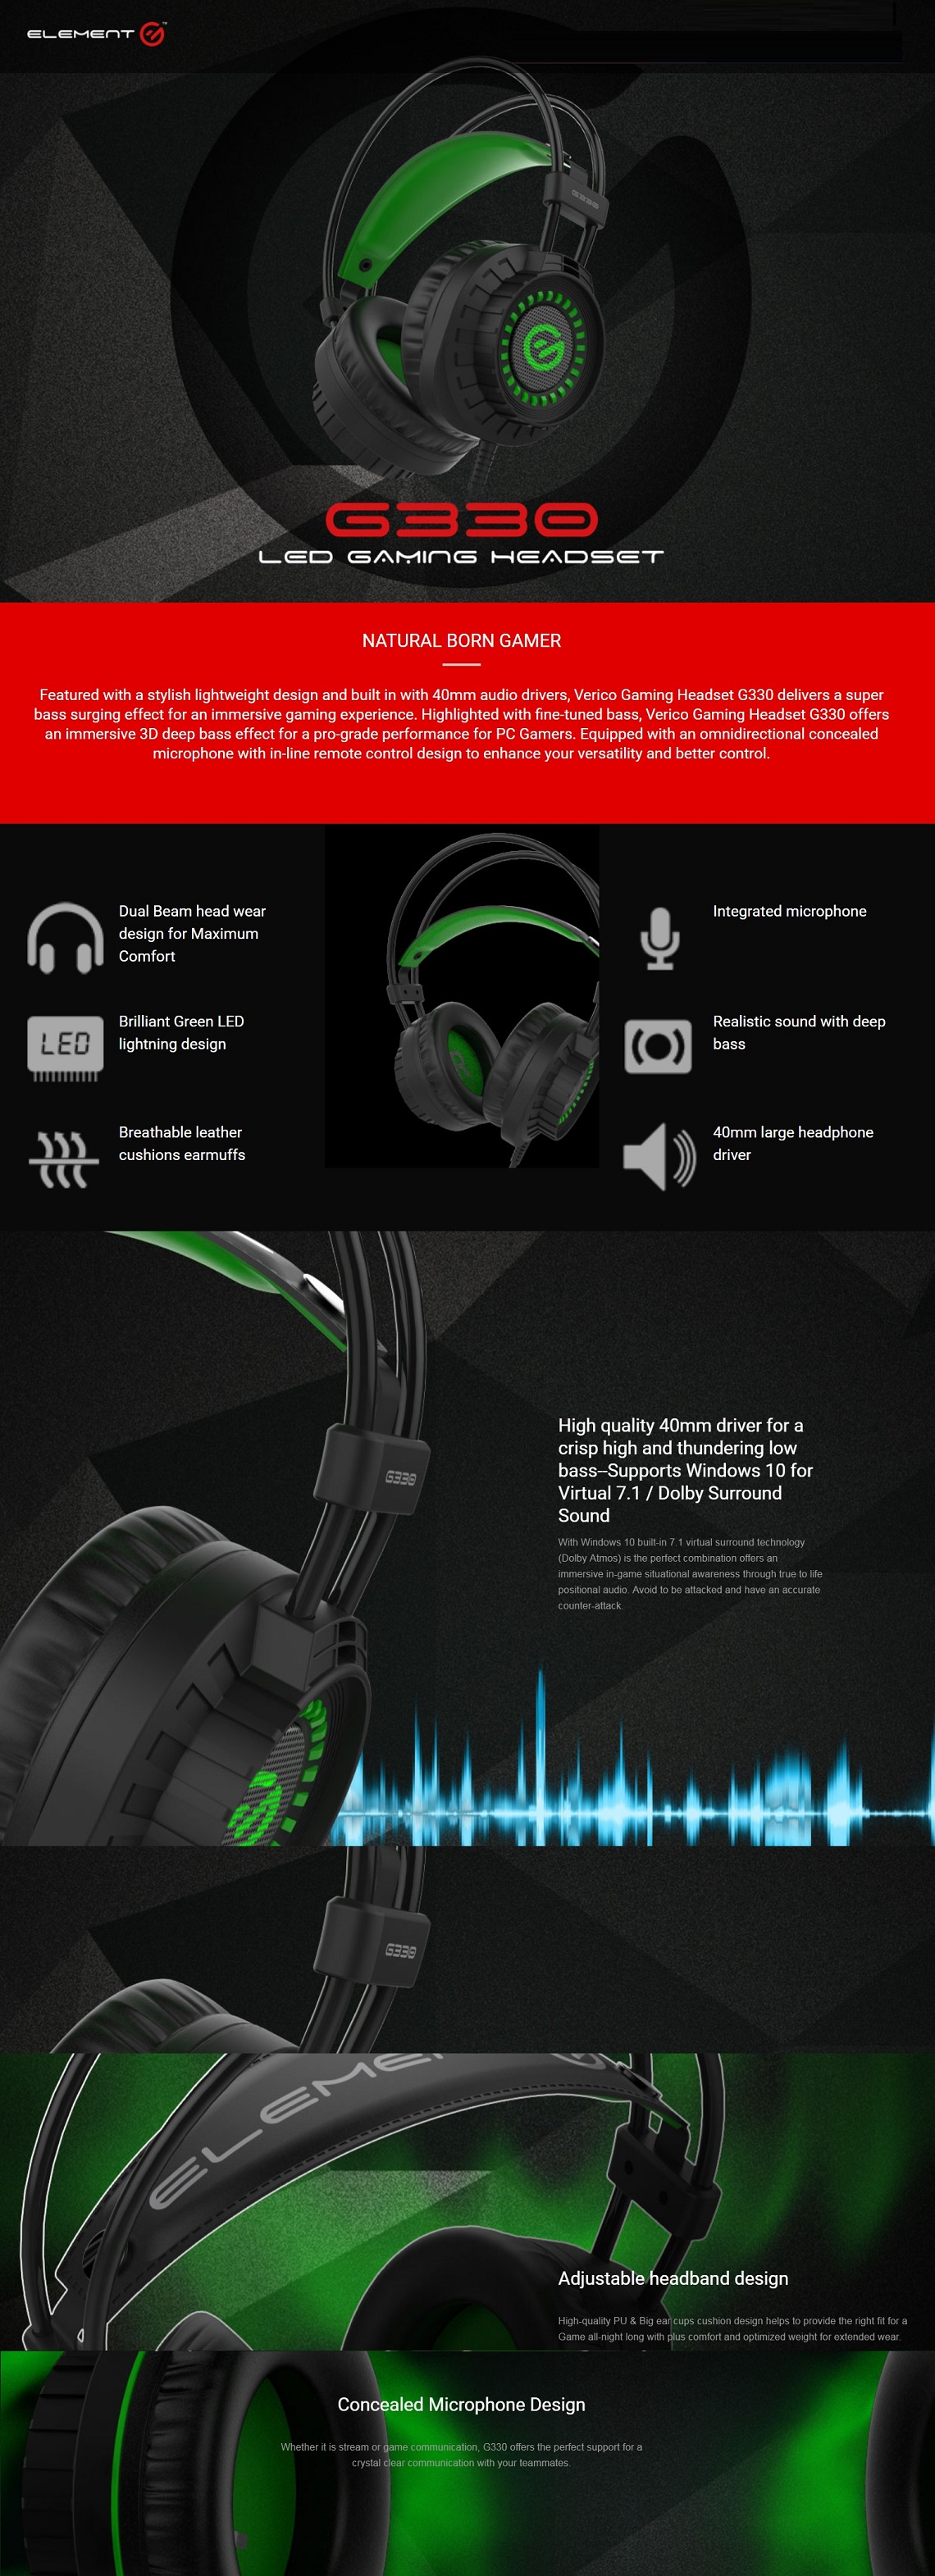 Verico Element G G330 USB & 3 5mm Green LED Gaming with 40mm Audio Drivers